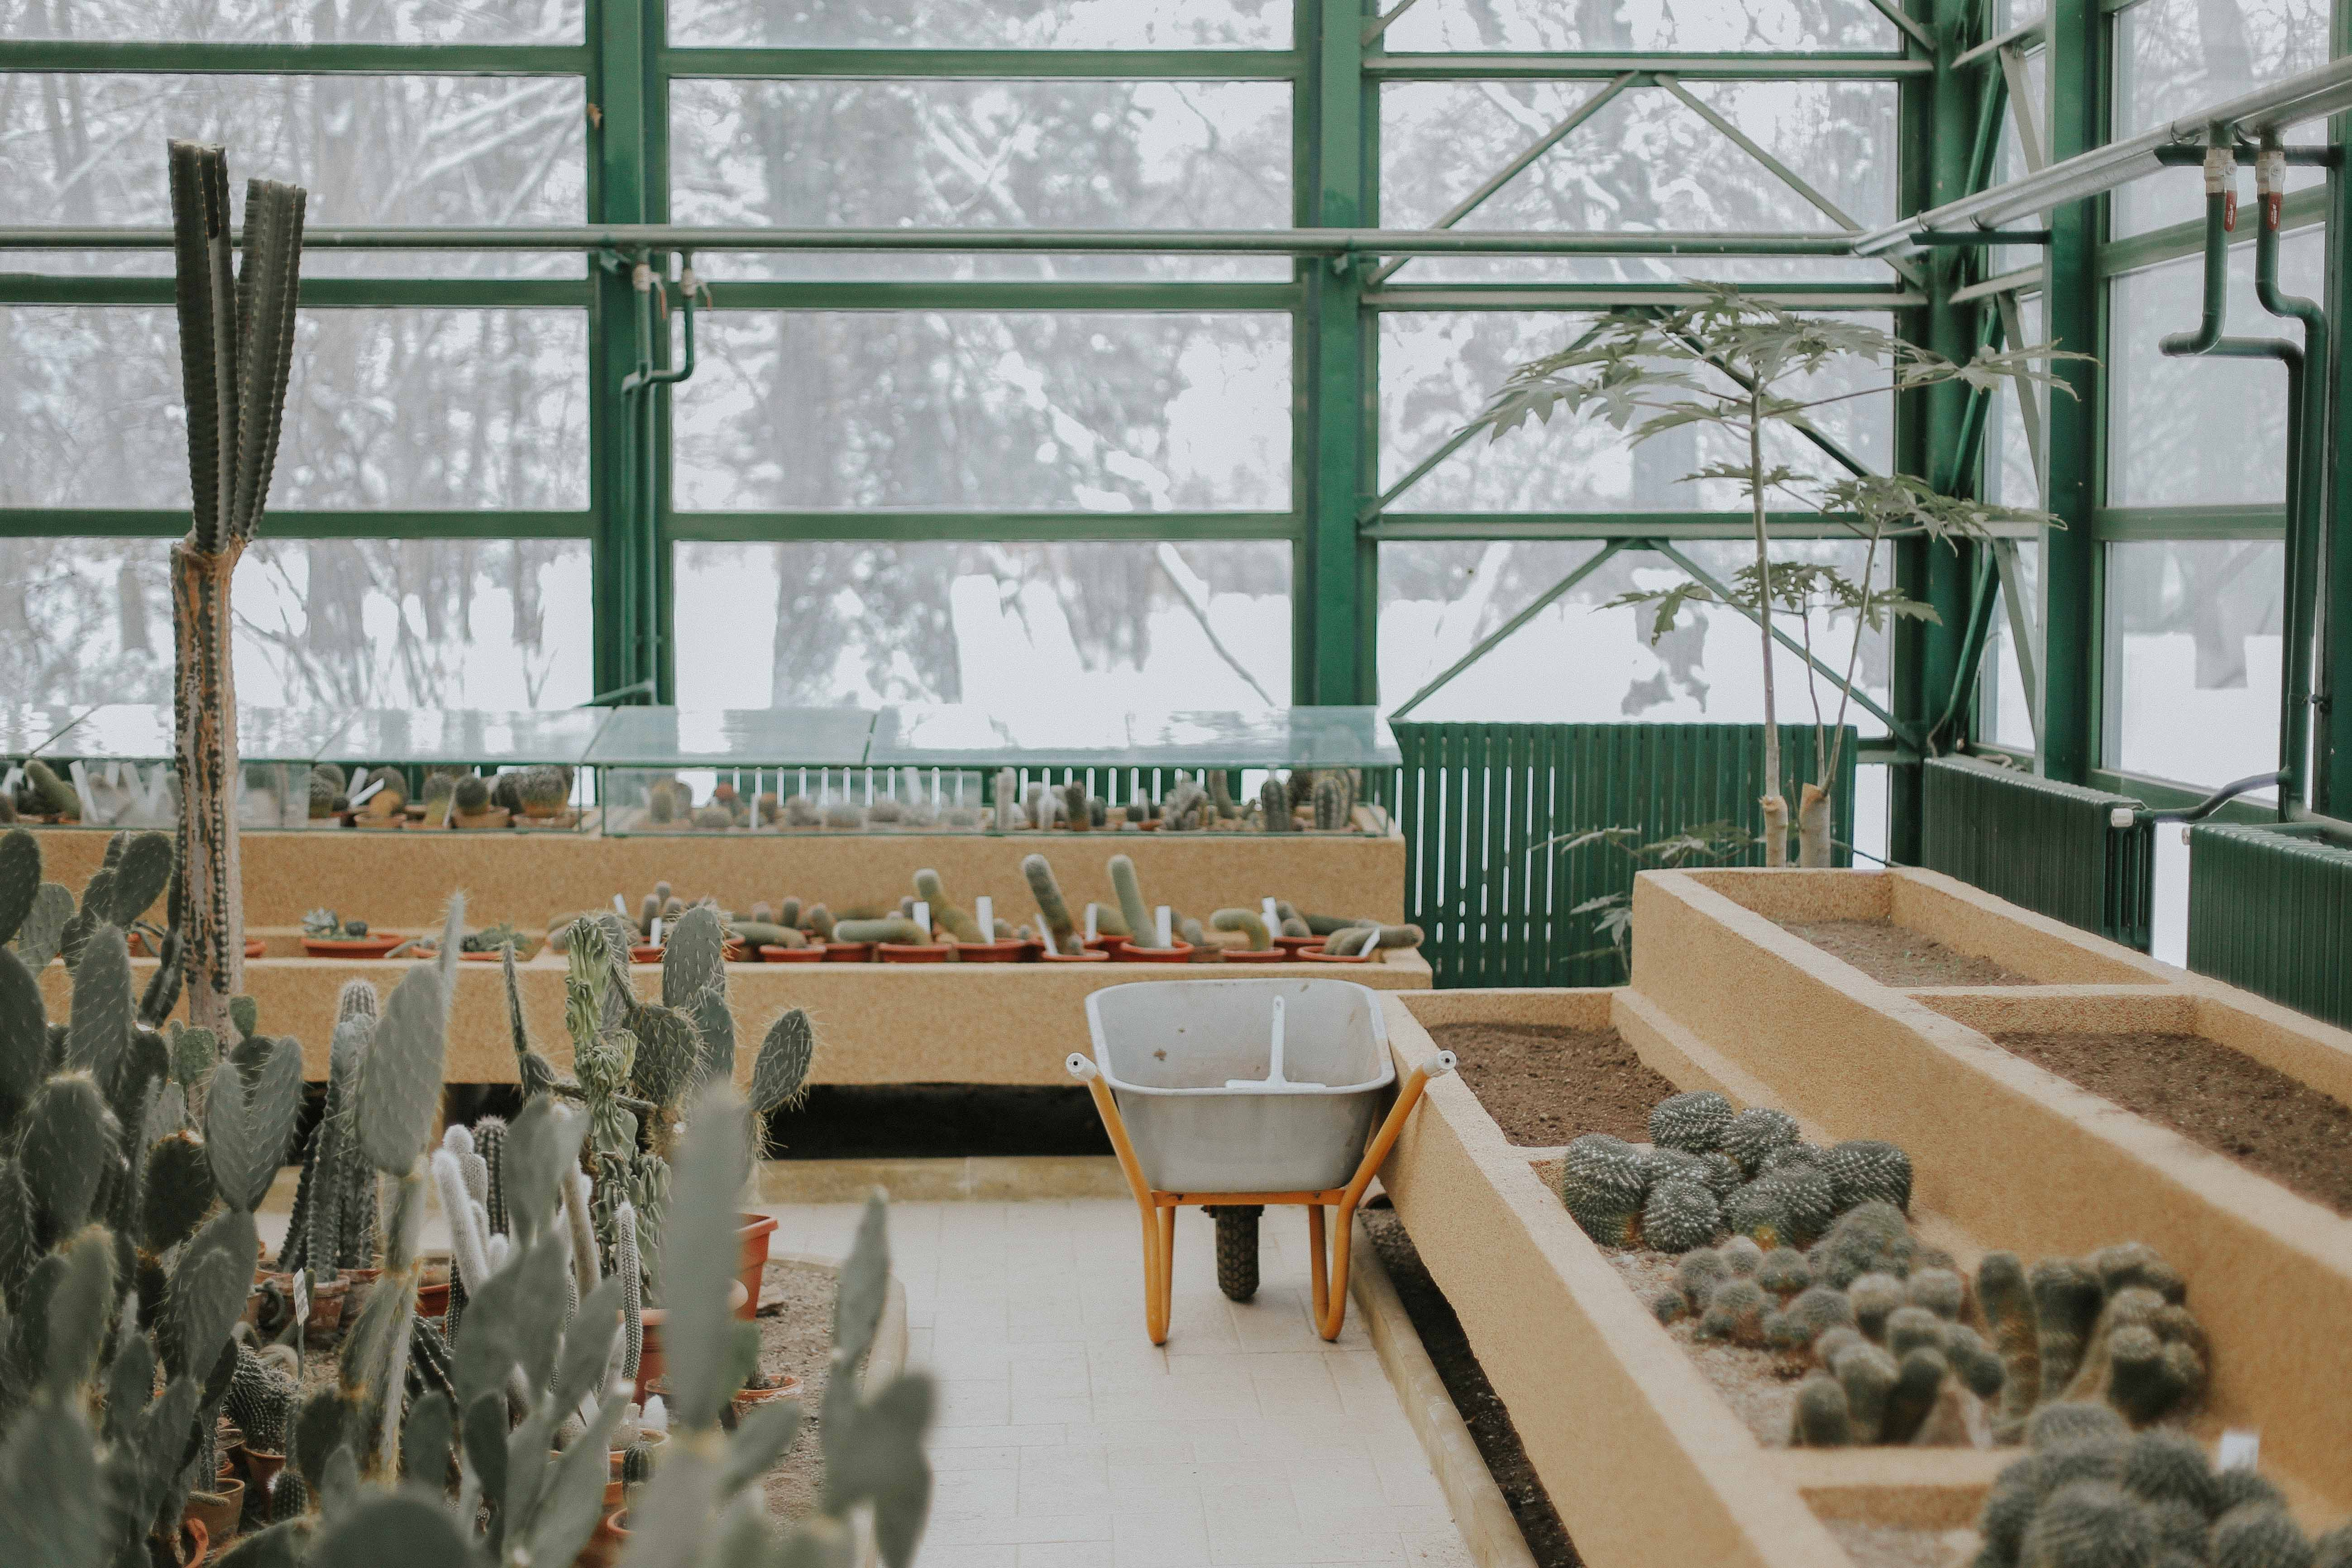 cacti inside greenhouse